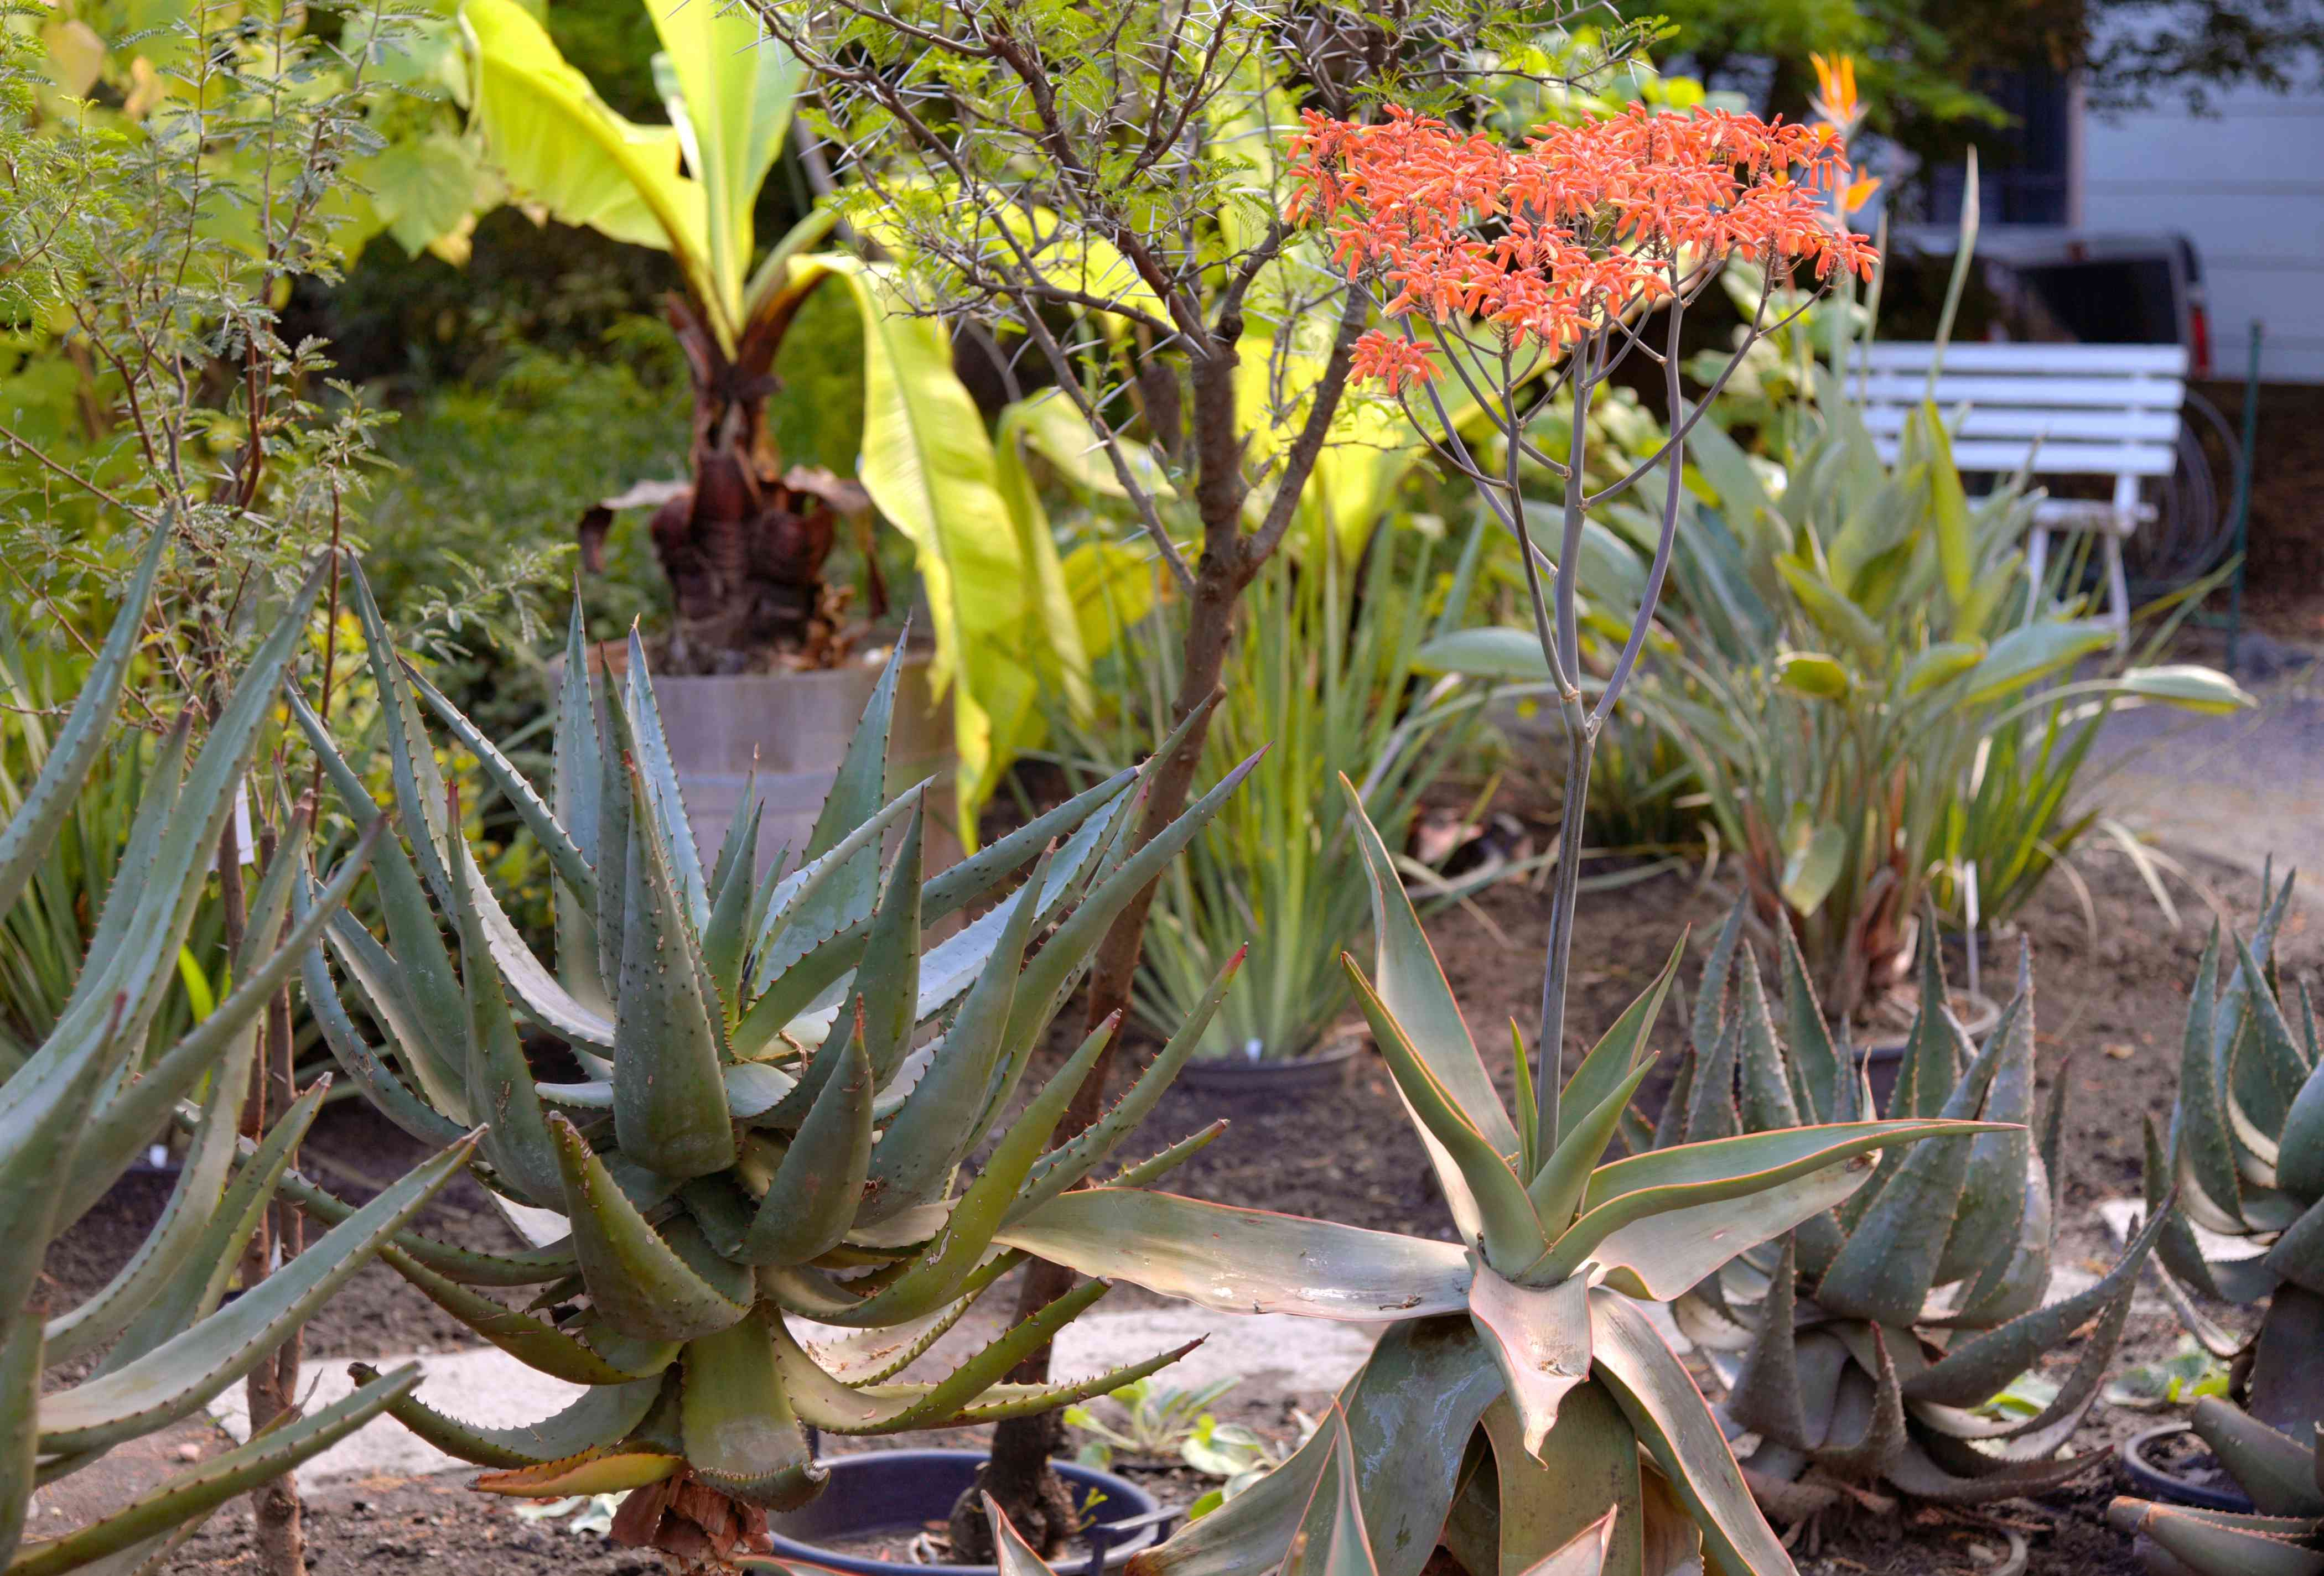 Coral aloe plants with wide thick leaves and coral-red blooms in middle of garden